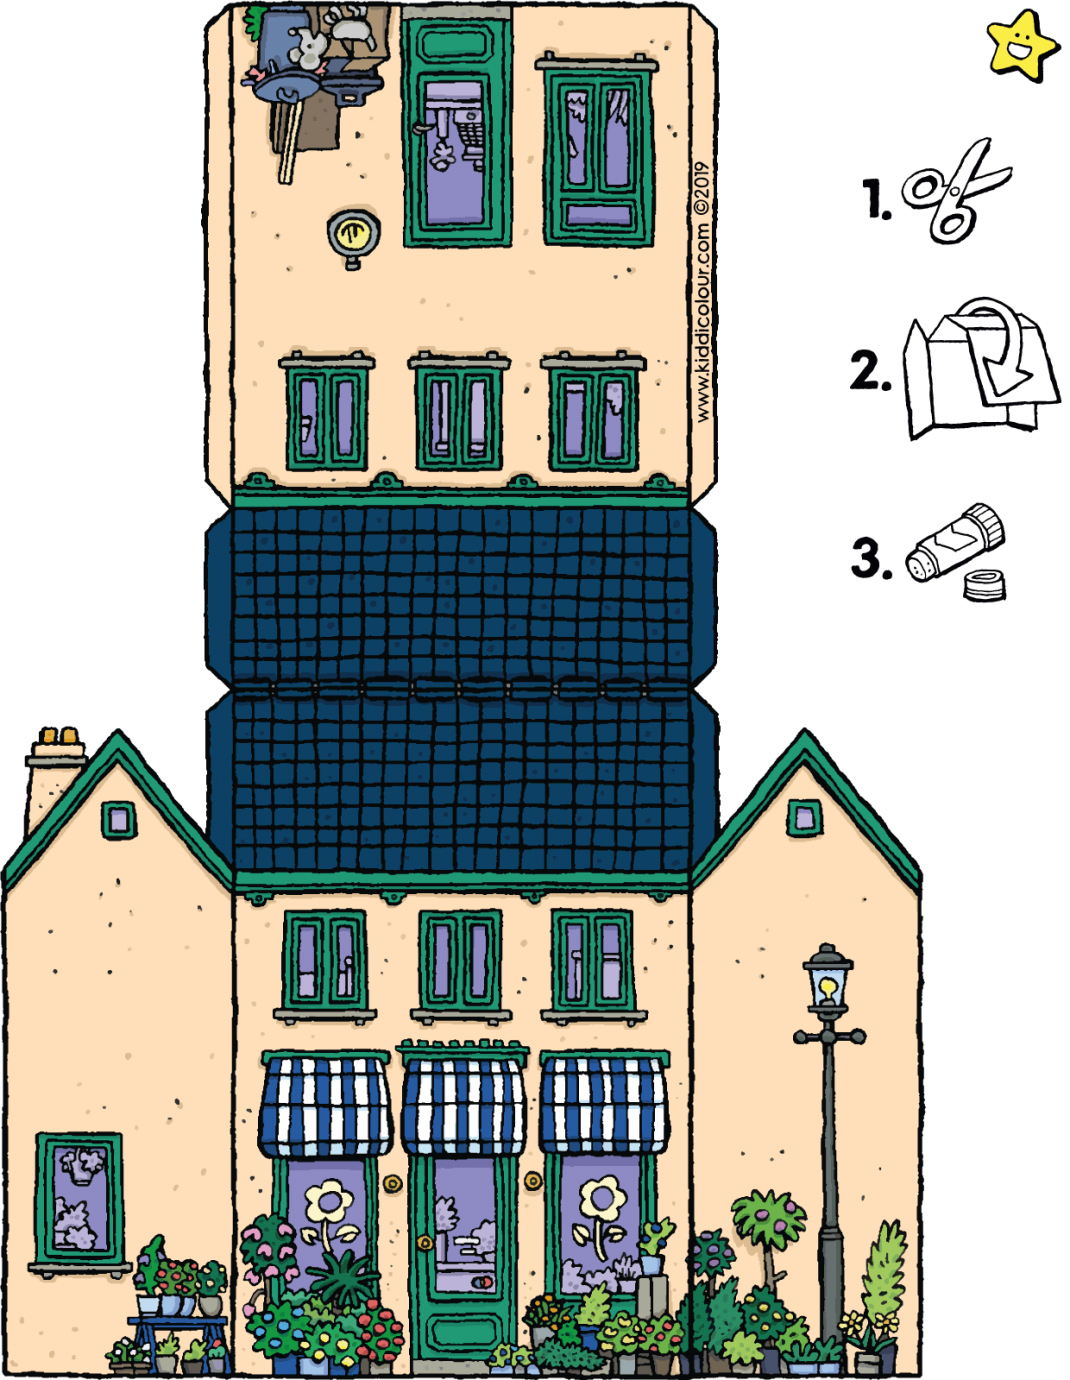 make your own florist shop colouring page drawing picture 01V